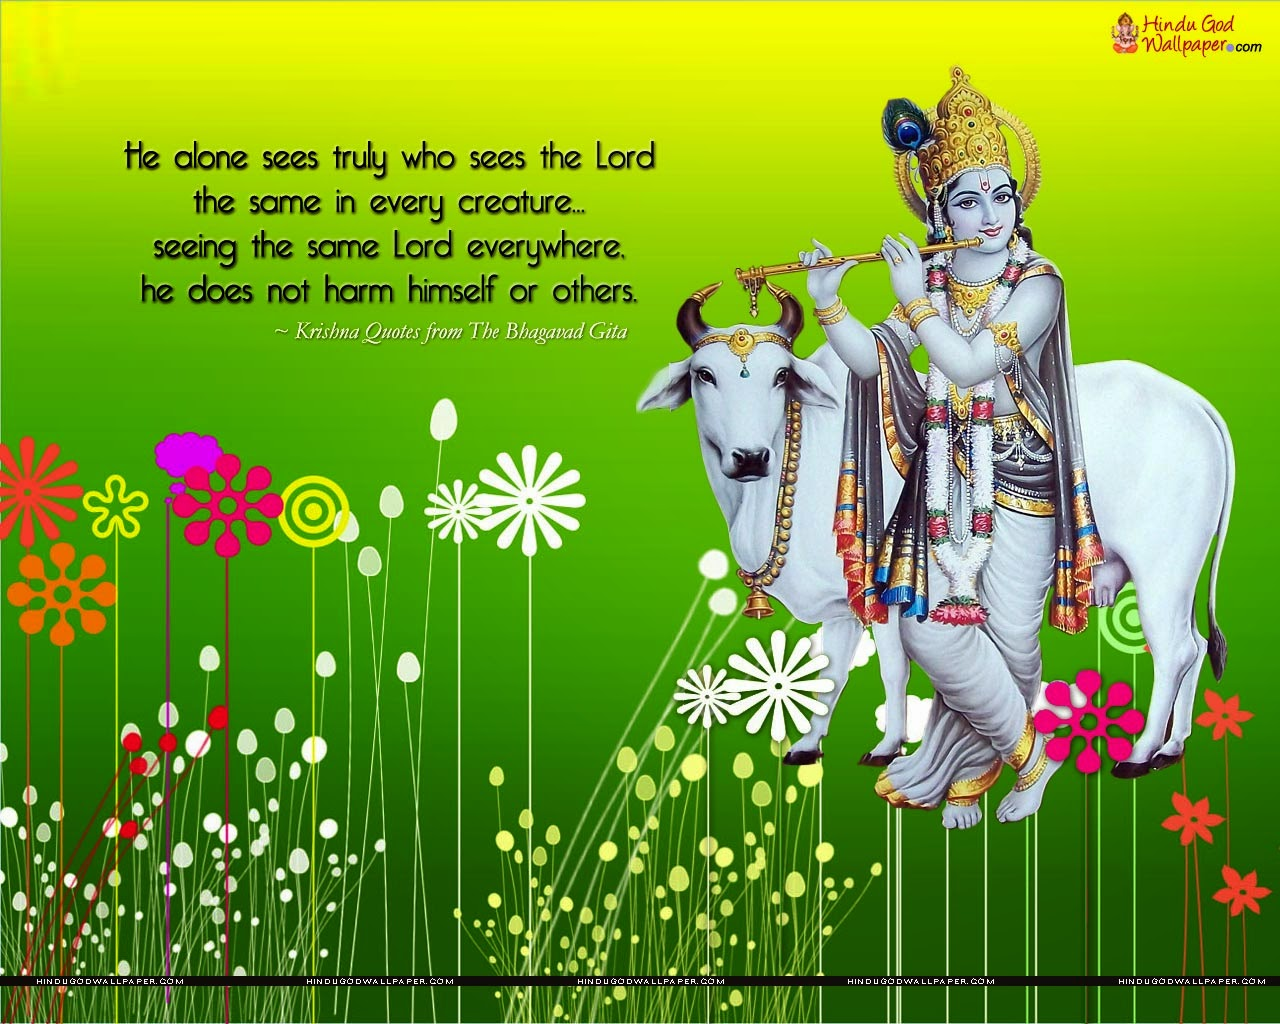 Hindu God Wallpapers: Lord Krishna With Cow Wallpapers